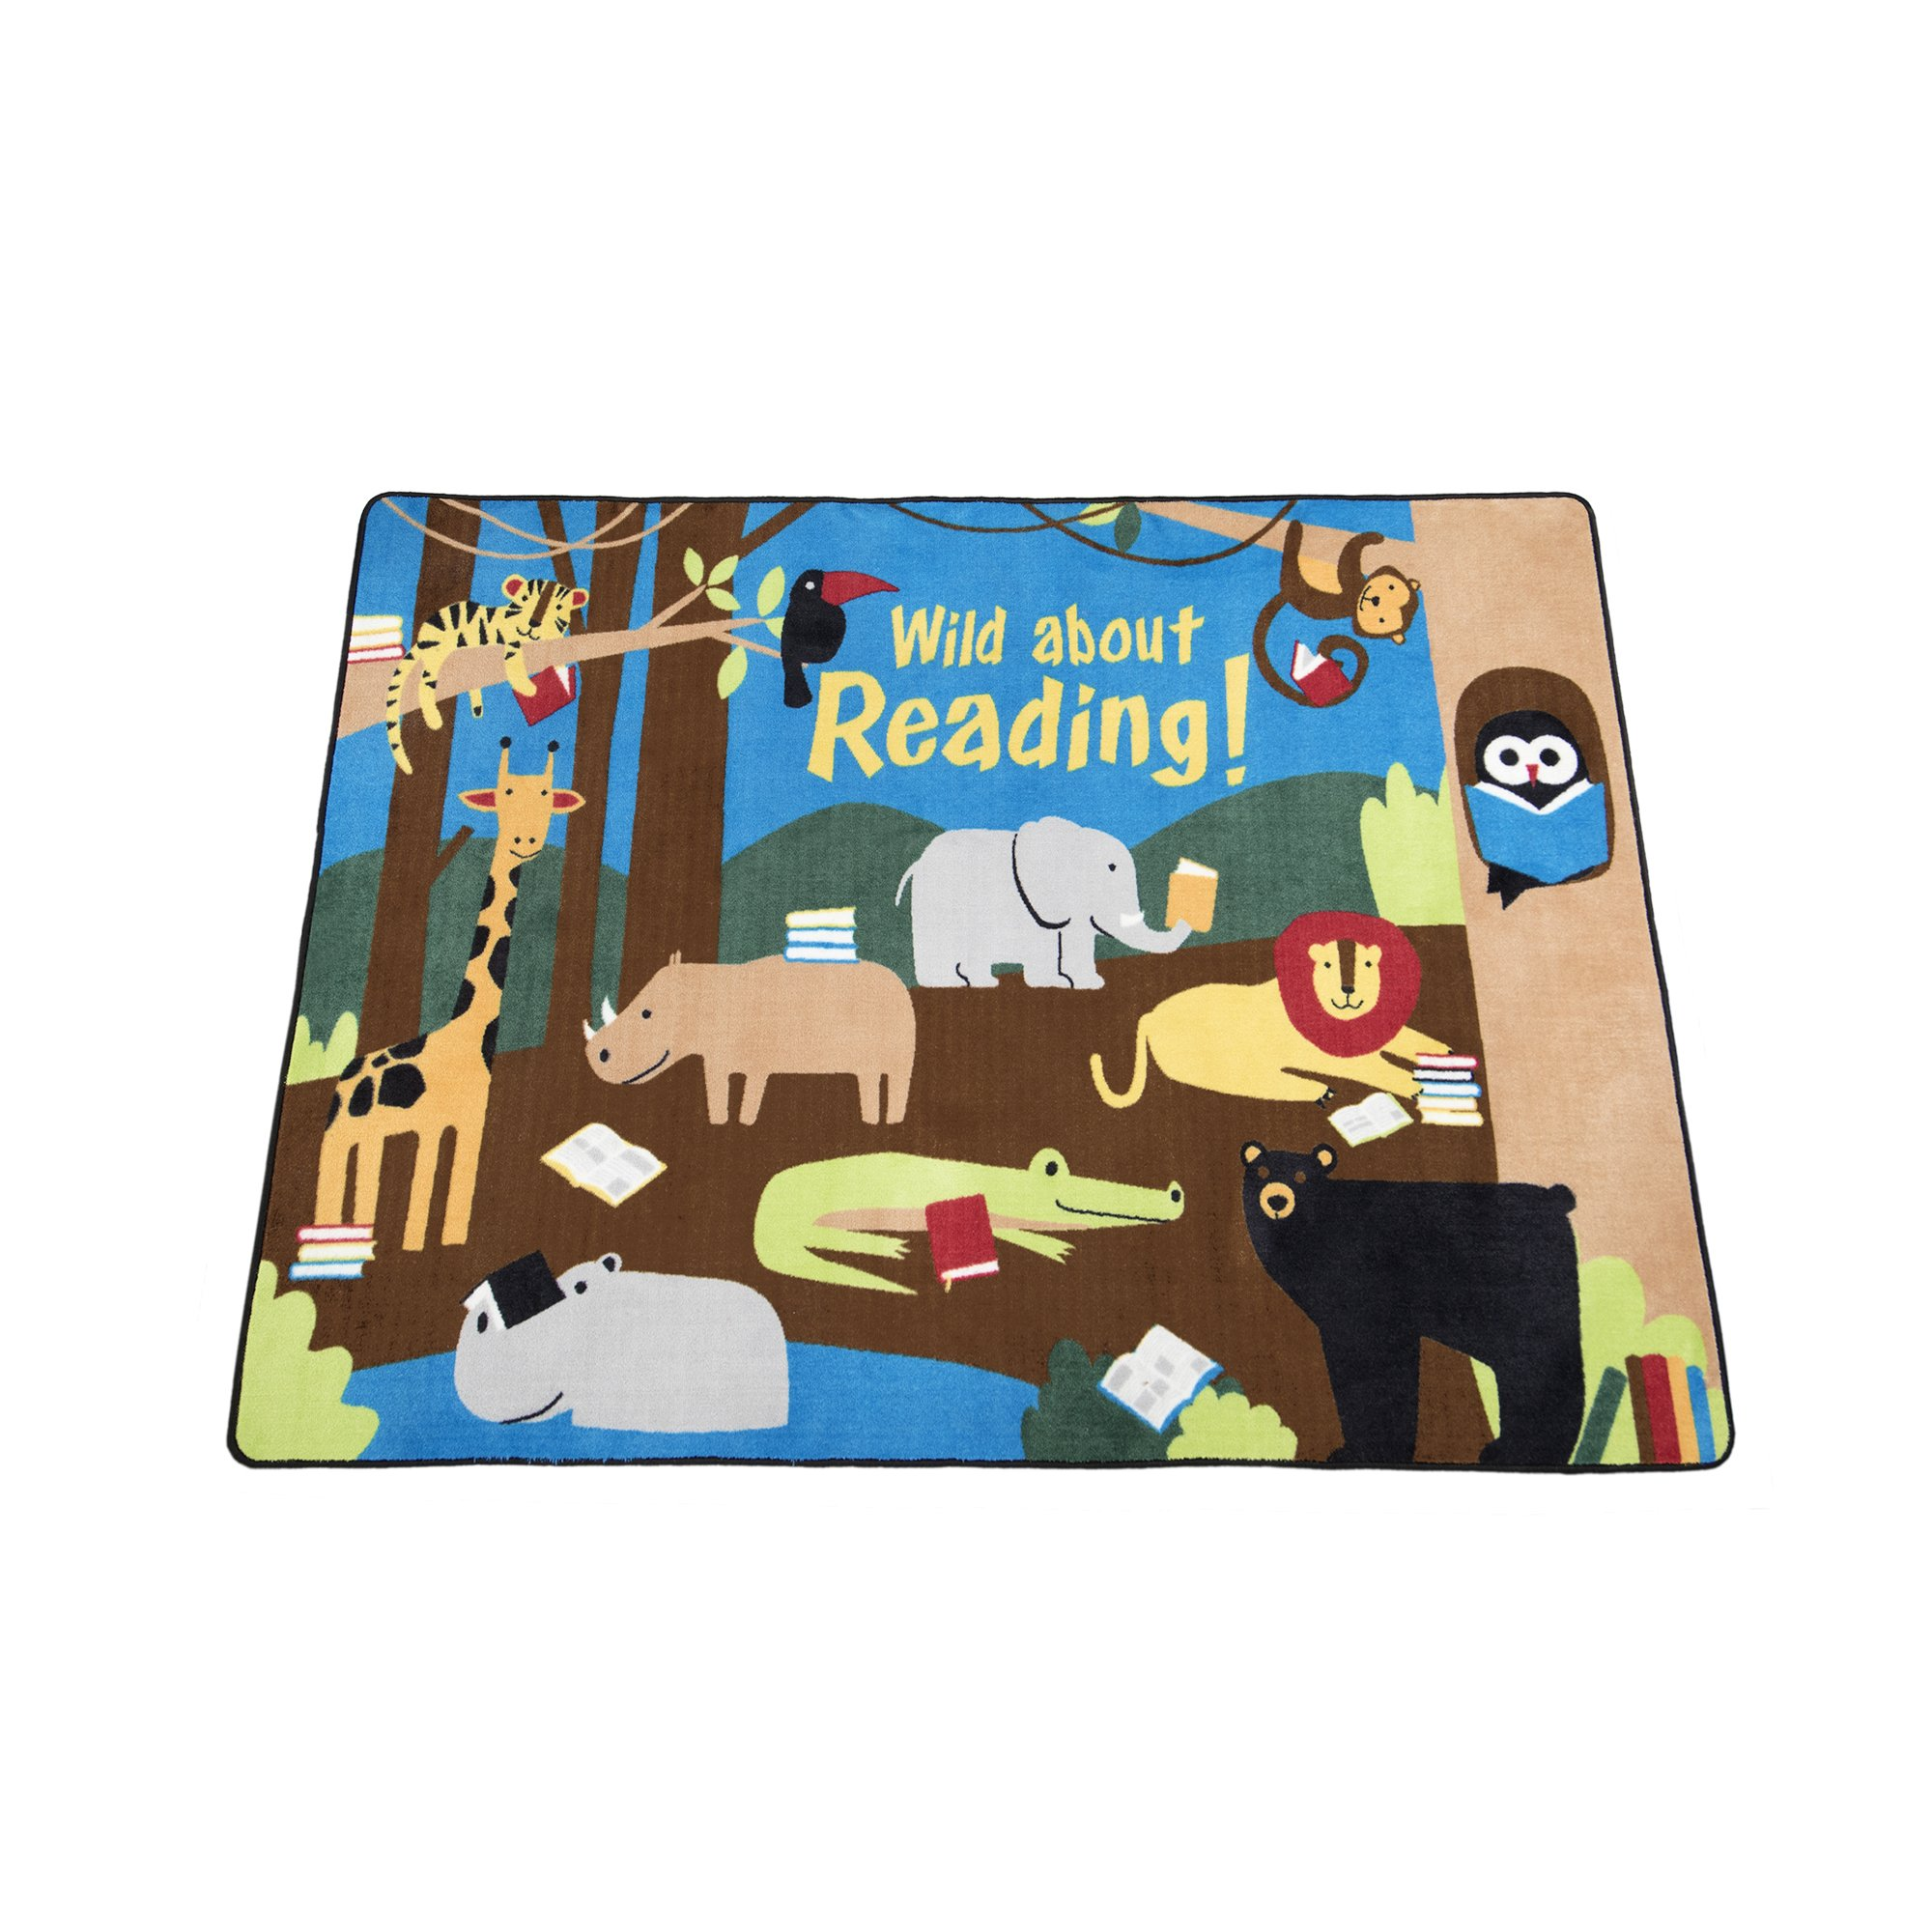 Guidecraft Wild About Reading Carpet 5'4'' x 7'8'' - Children's Classroom Educational Rug, Kids Animal Jungle Themed Soft Rug for Playroom